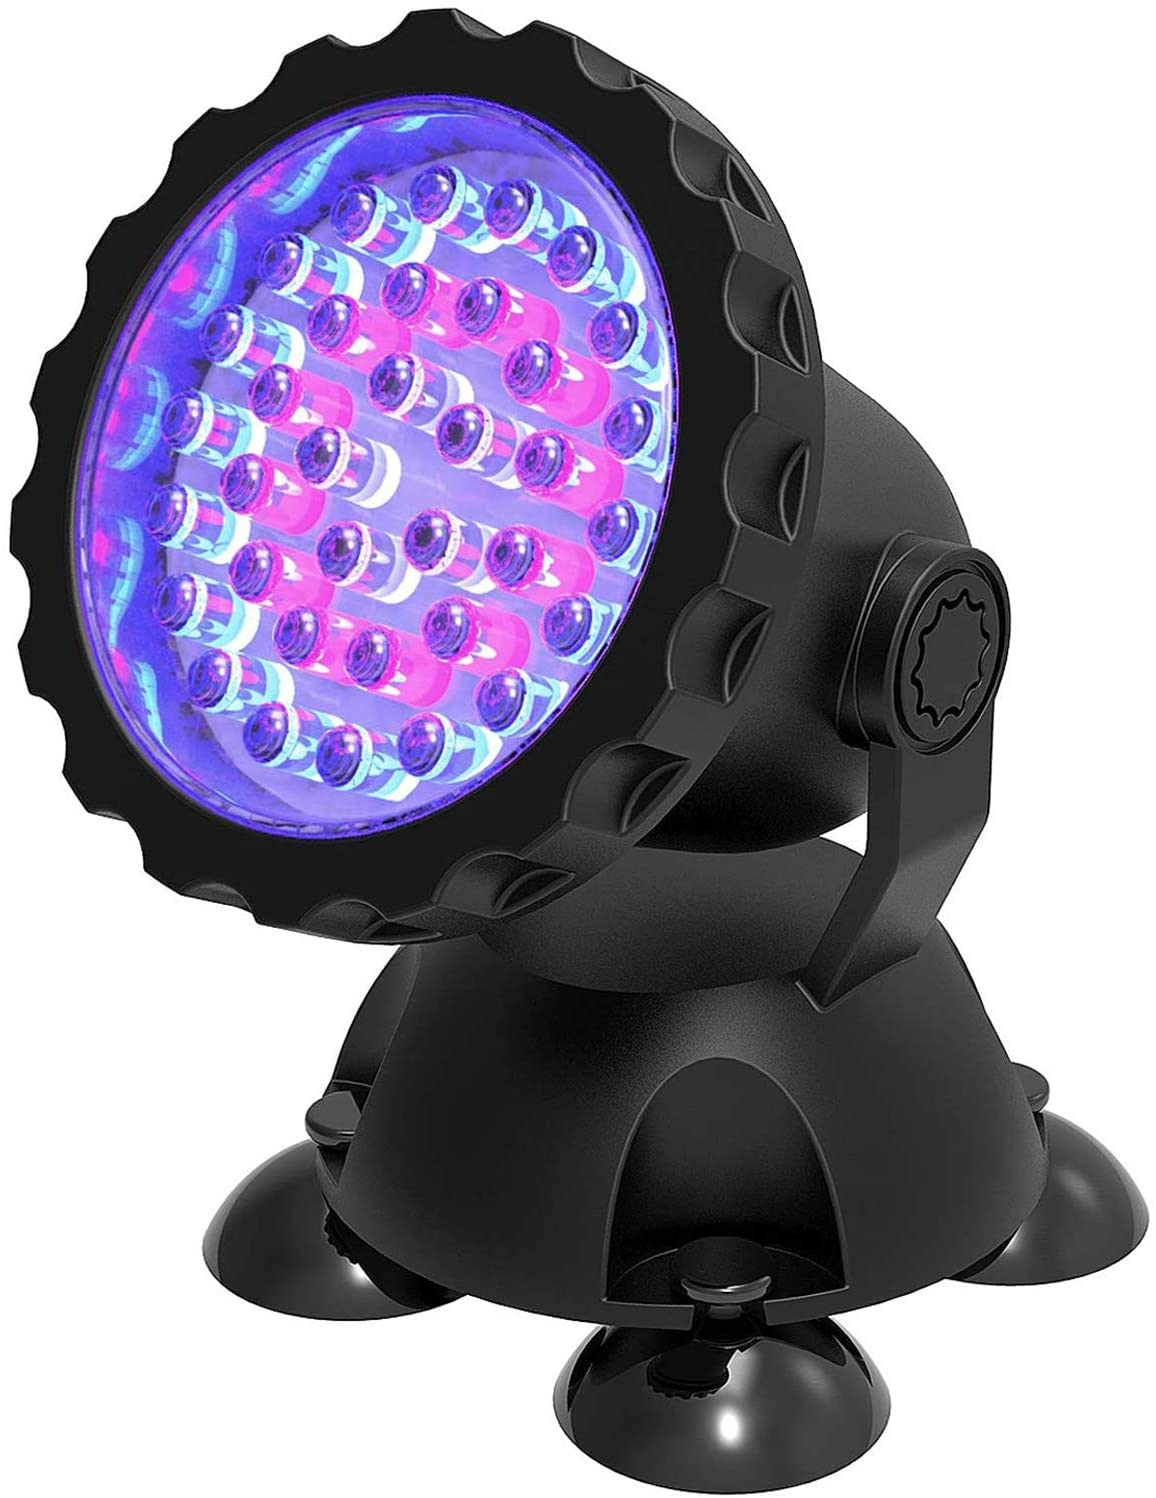 ZHG Pond Lights Underwater Fountain Light 3.5W Color Changing Submersible Spotlight with 36-LED Bulbs Underwater Light Waterproof IP68 Spot Light for Pond Aqaurium Garden Fish Tank